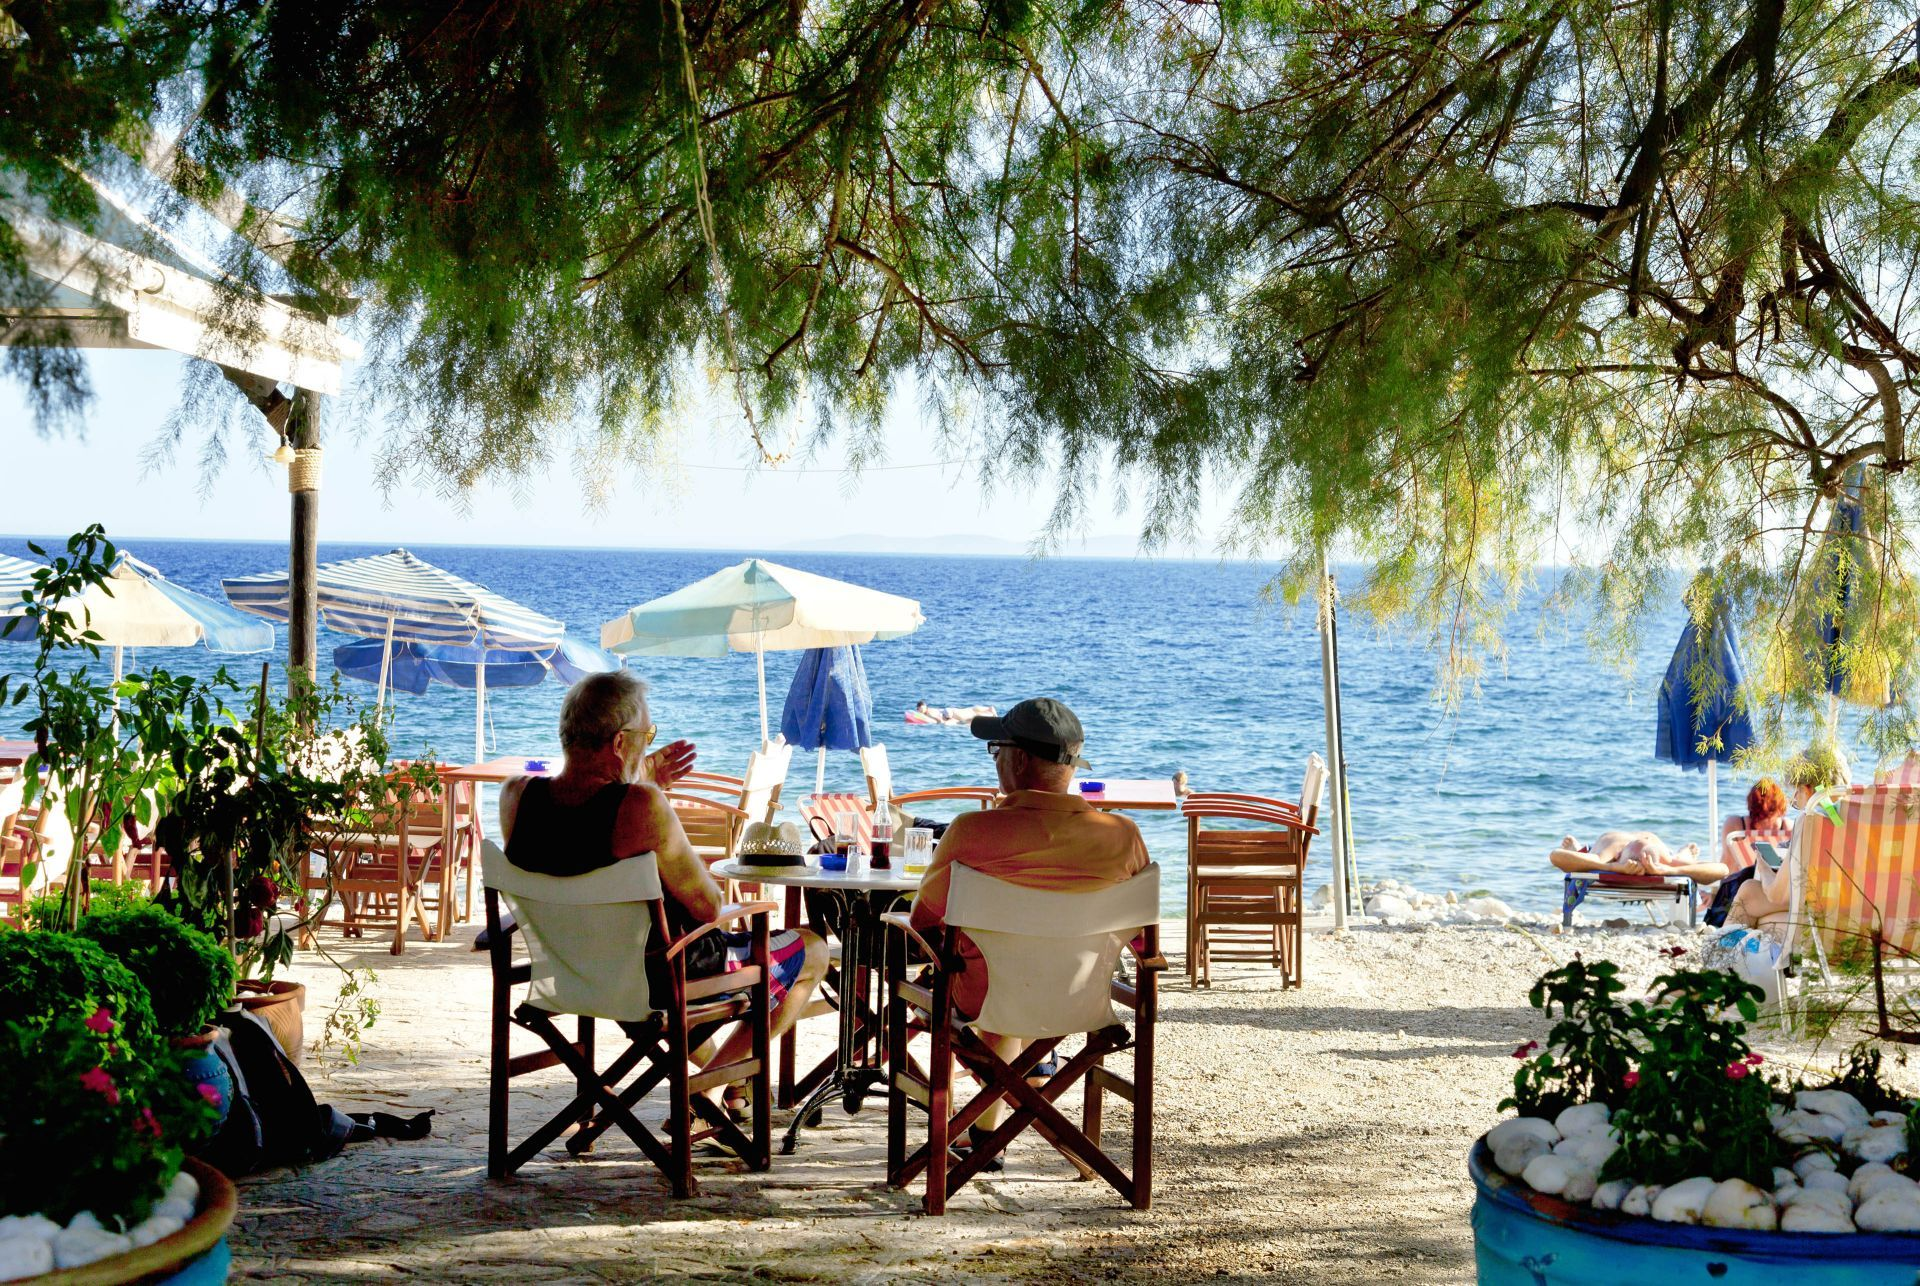 Cafes in Samos